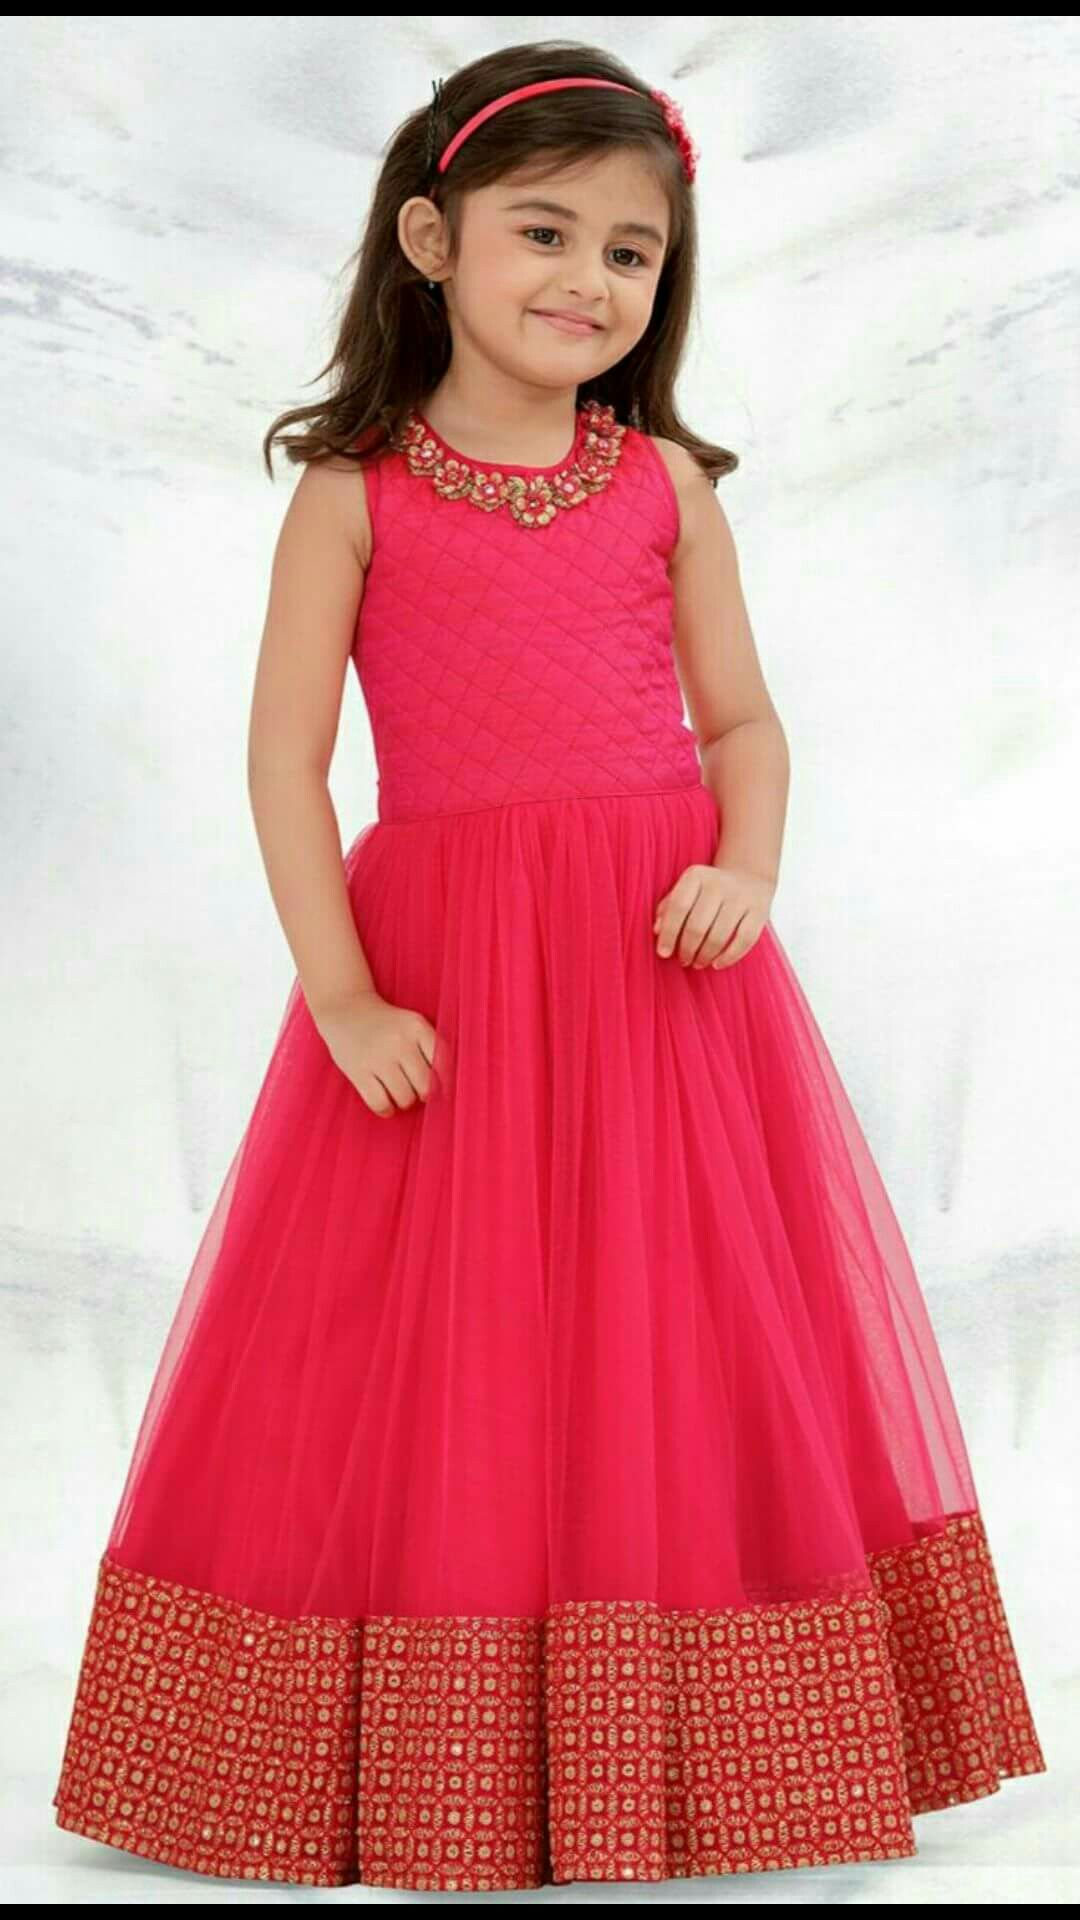 49815f5b3640 Frocks Long Frocks For Kids